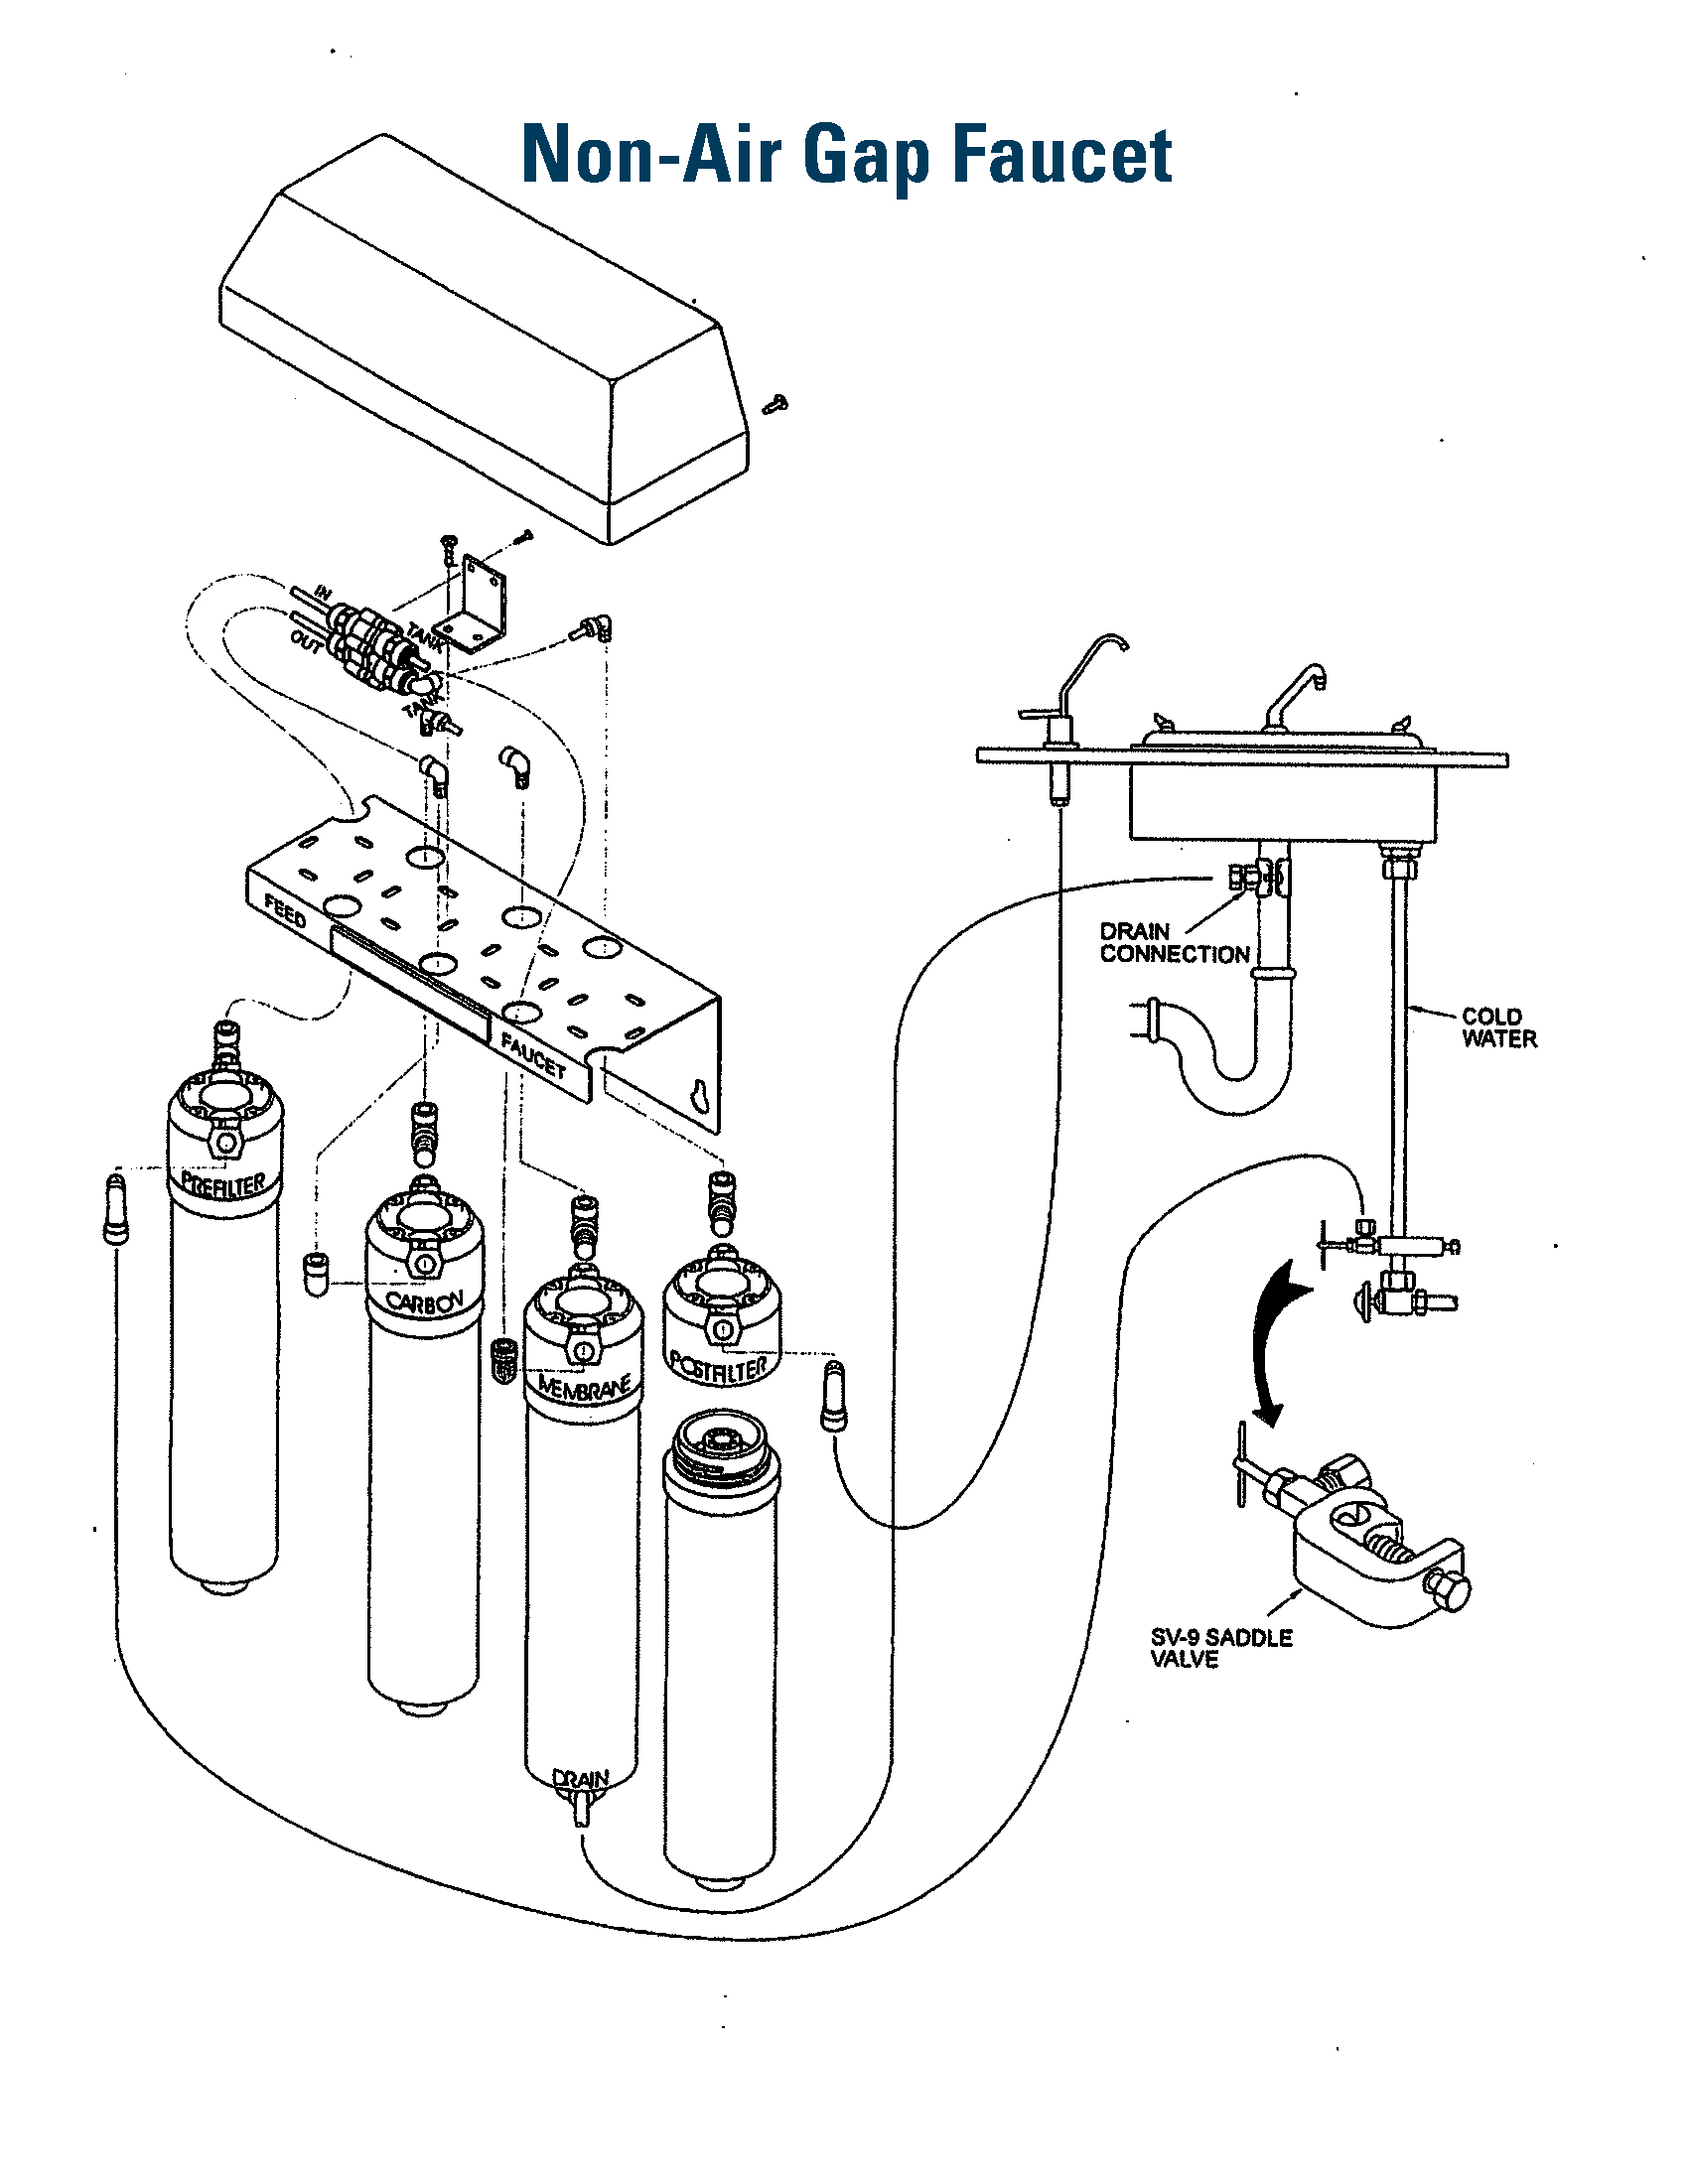 Reverse Osmosis Systems Install Ex le further Occasionalundersinkinstallation furthermore Water Softener Installation besides Was My Water Softener Hooked Up Correctly likewise Dishwasher Air Gap Schematic. on water softener installation